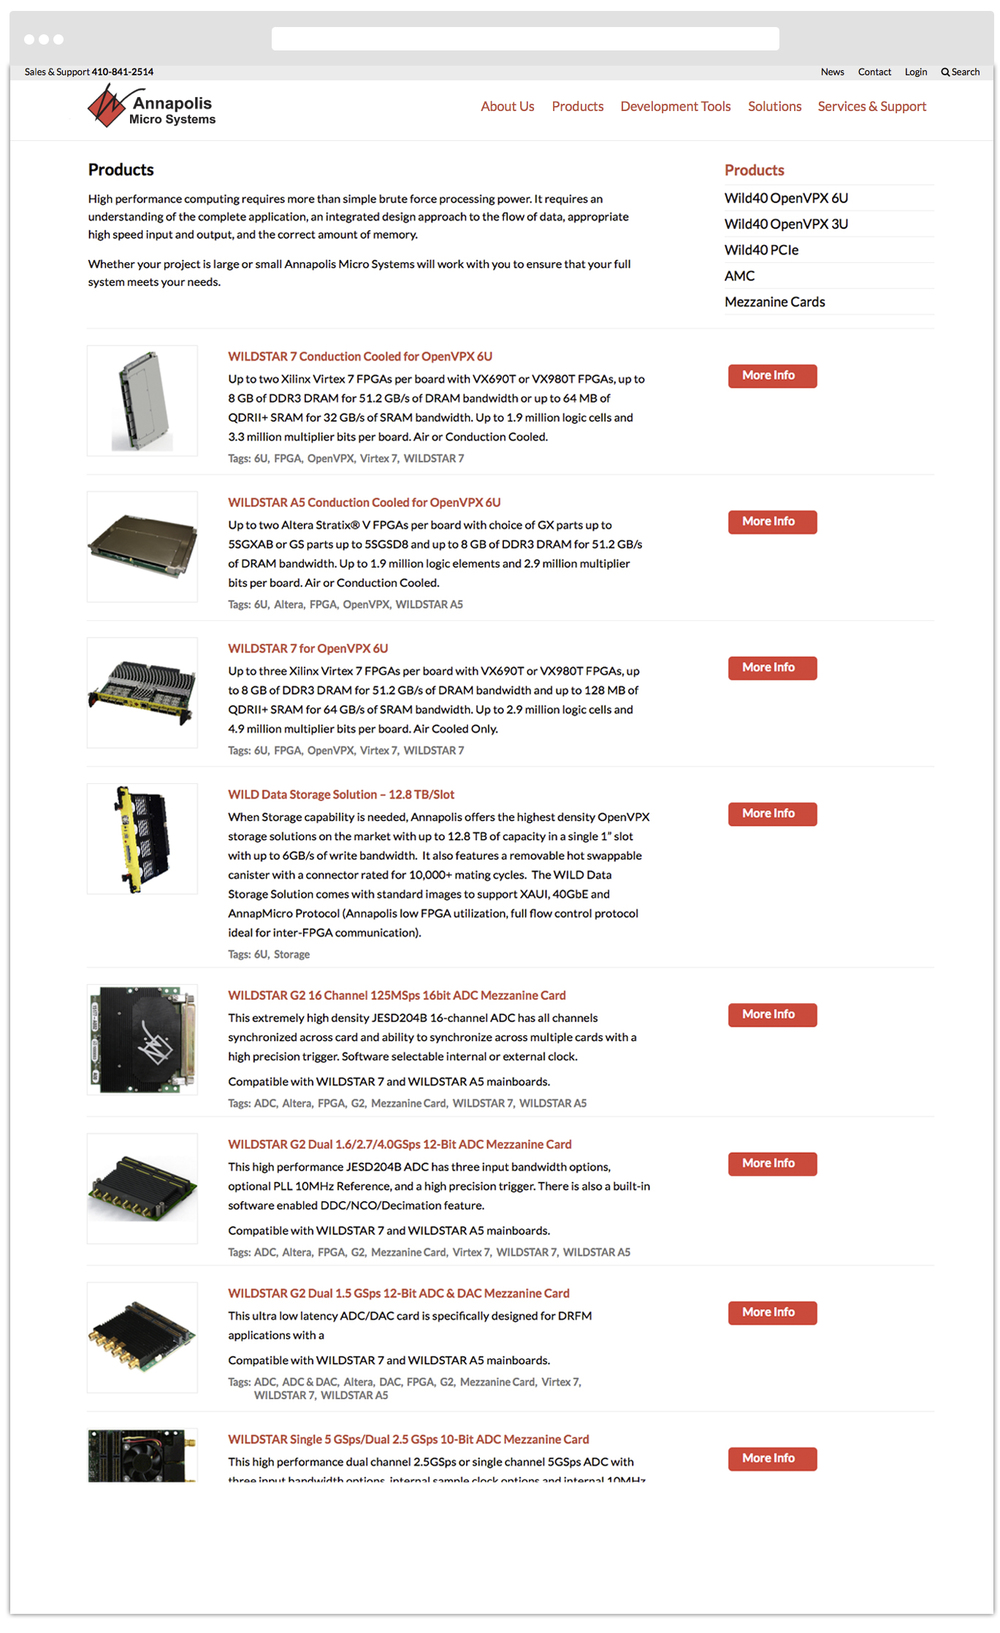 Product Catalog Landing Page